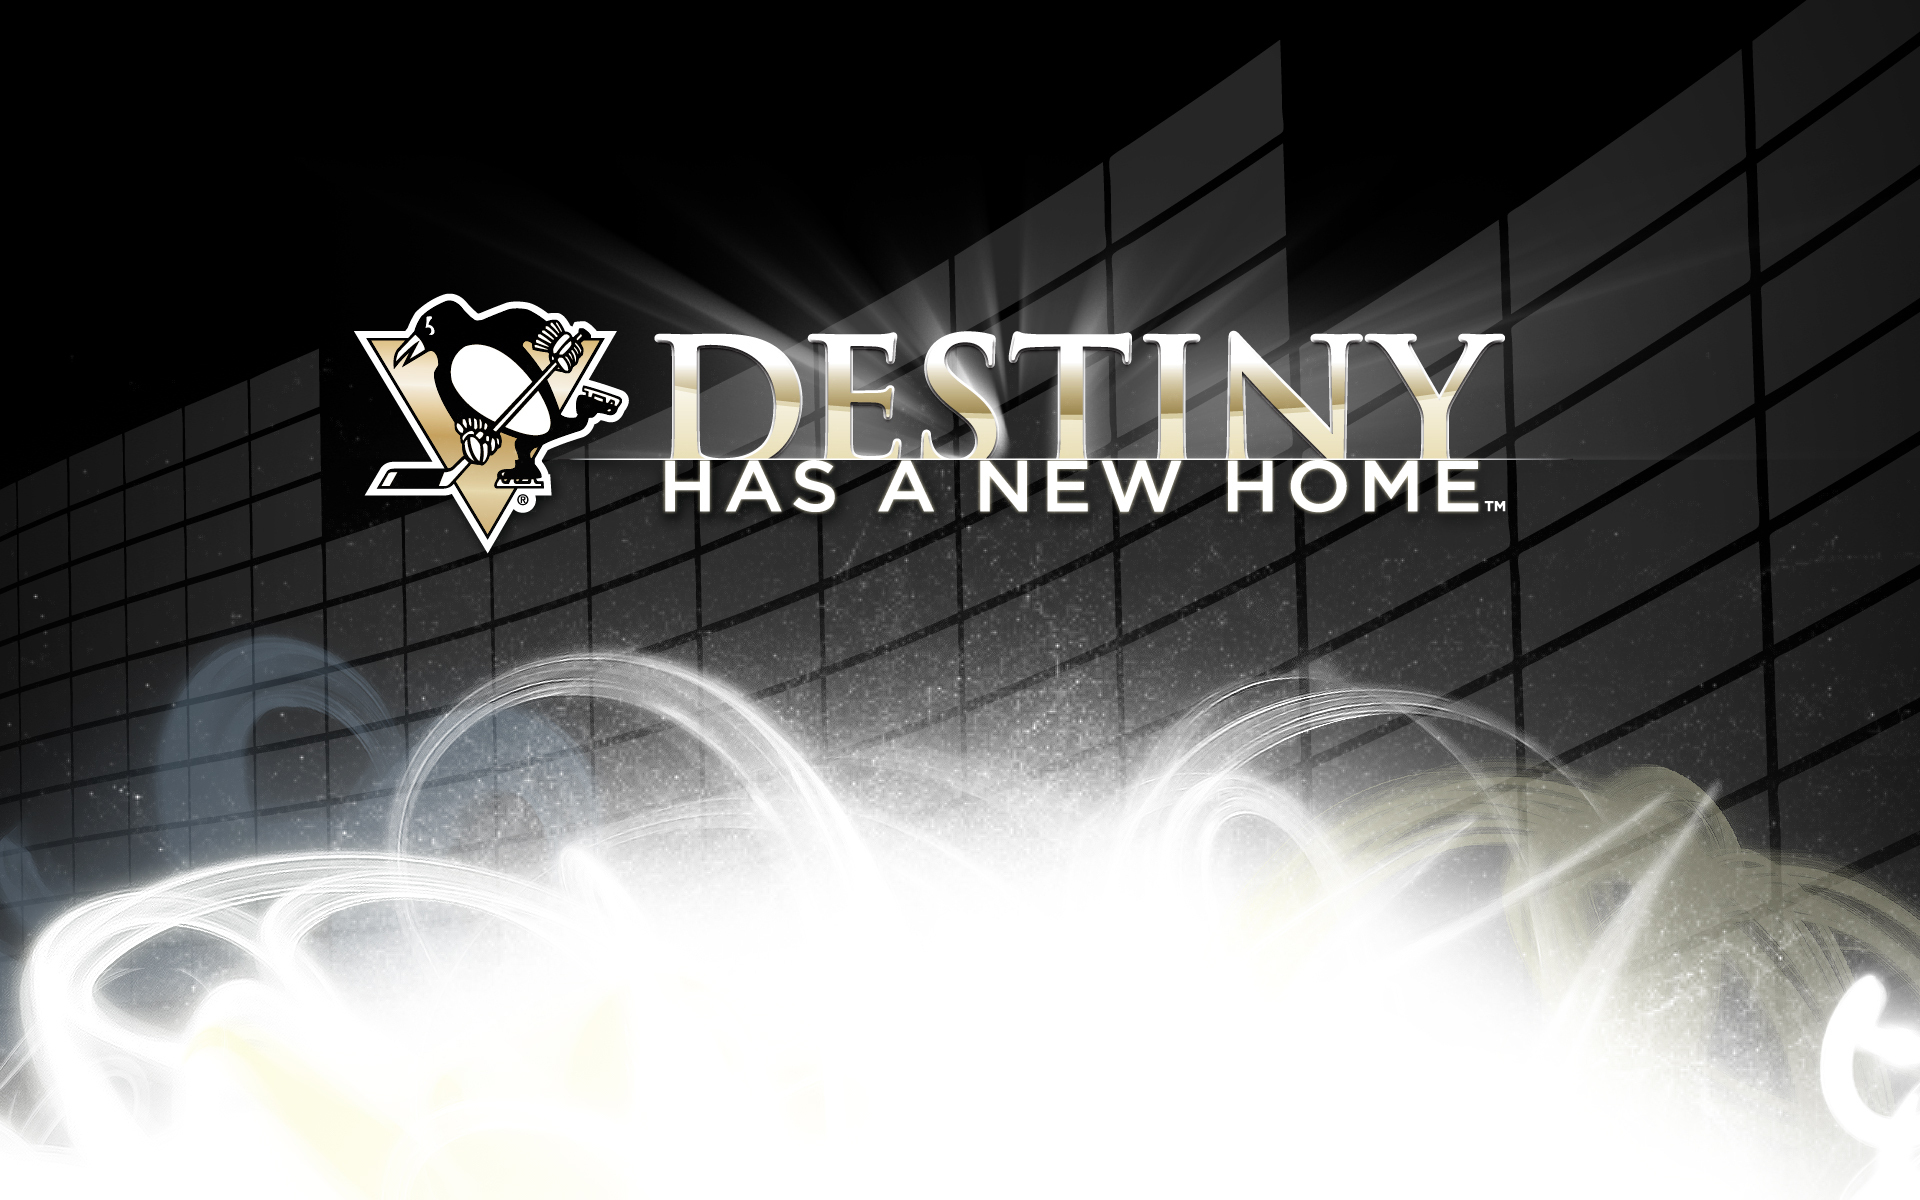 39 destiny has a new home 39 pittsburgh penguins wallpaper for New home wallpaper